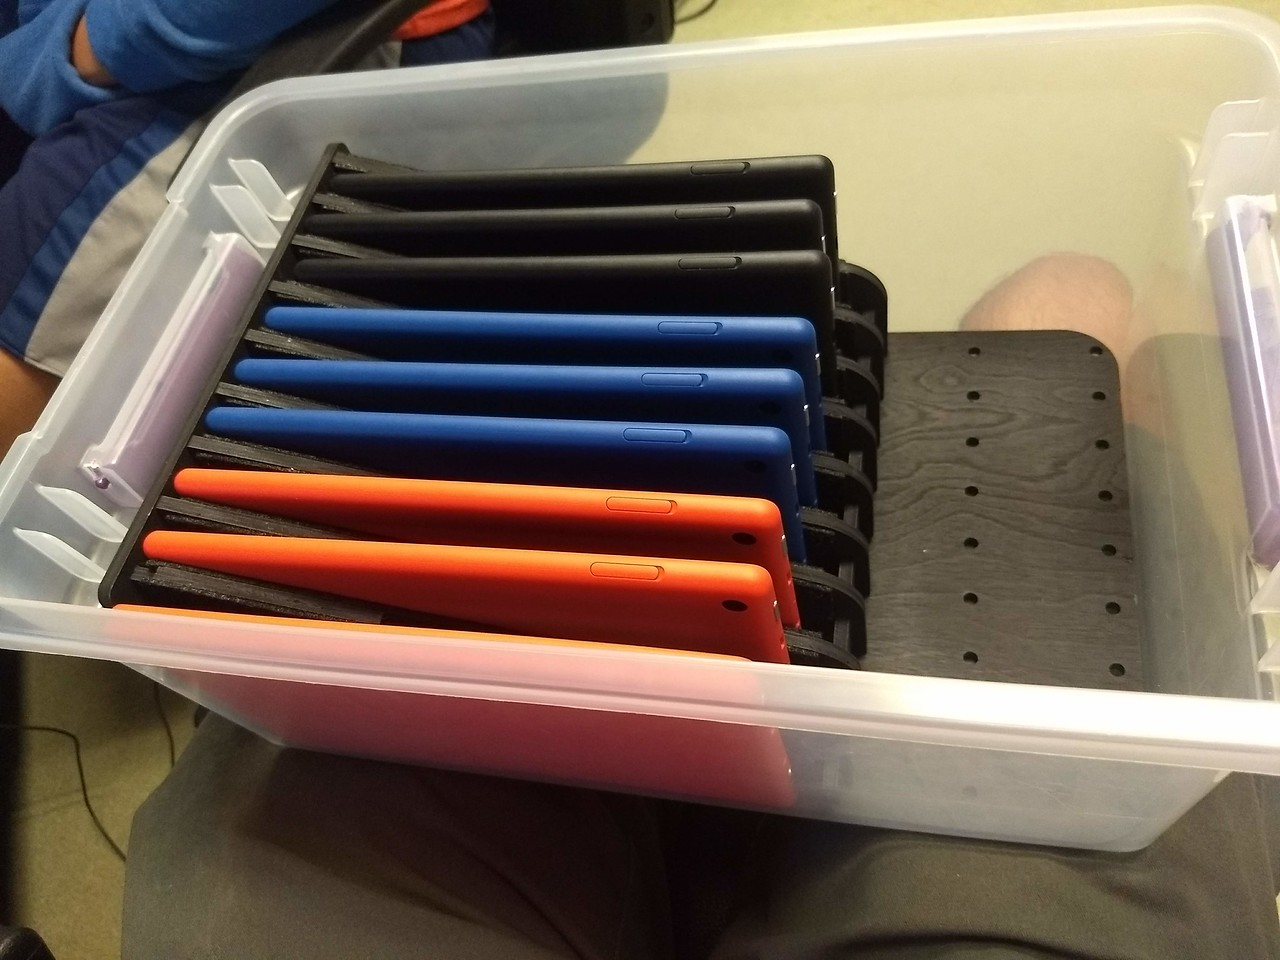 Scouting Tablets and Storage